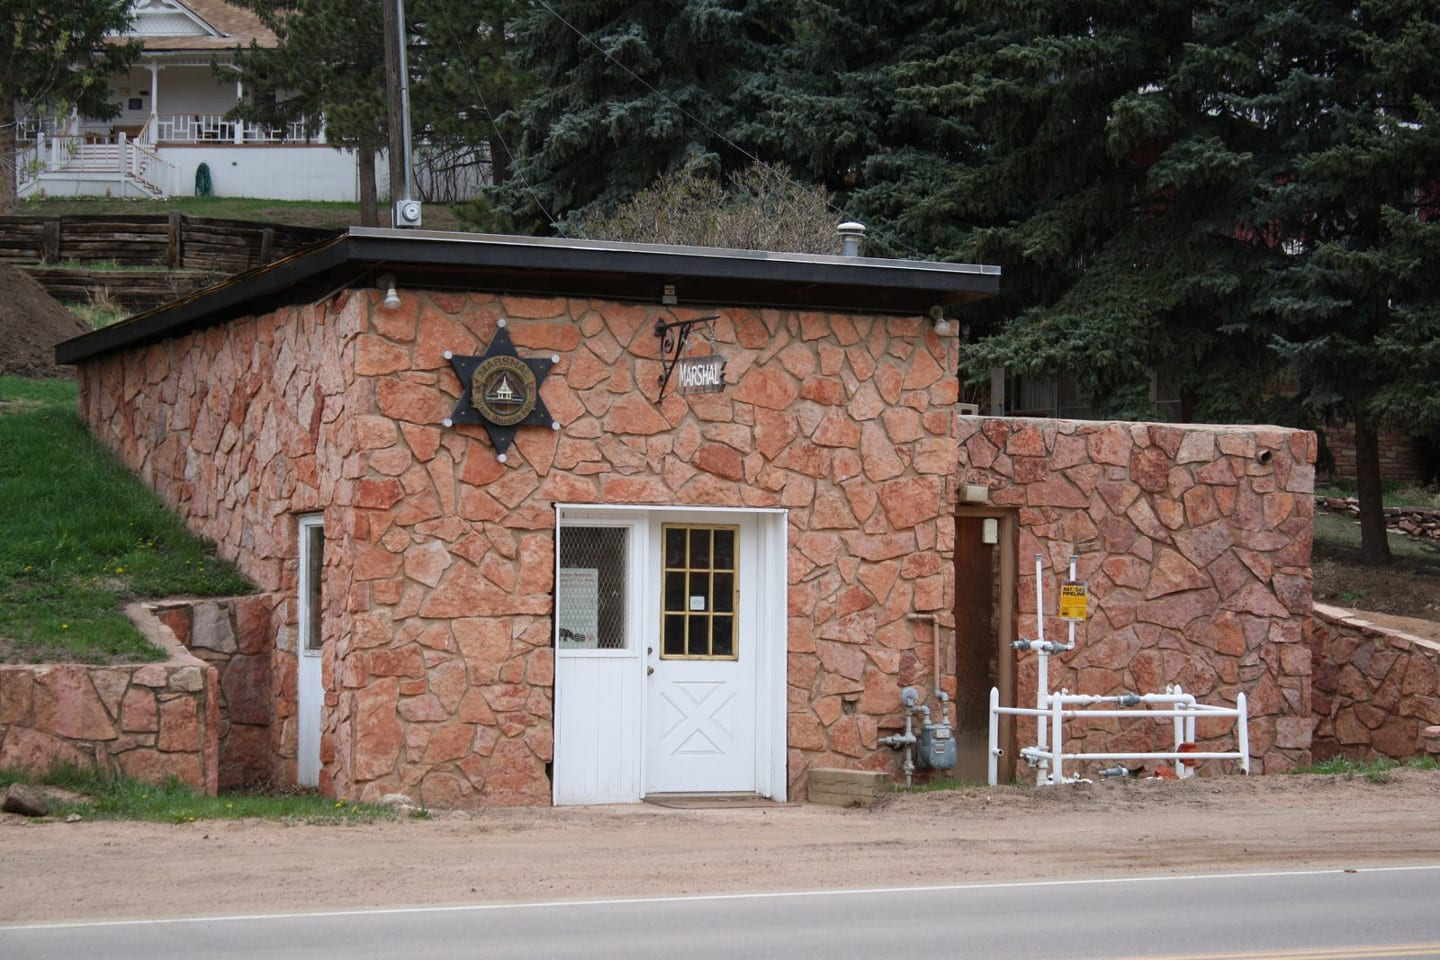 Green Mountain Falls Police Station